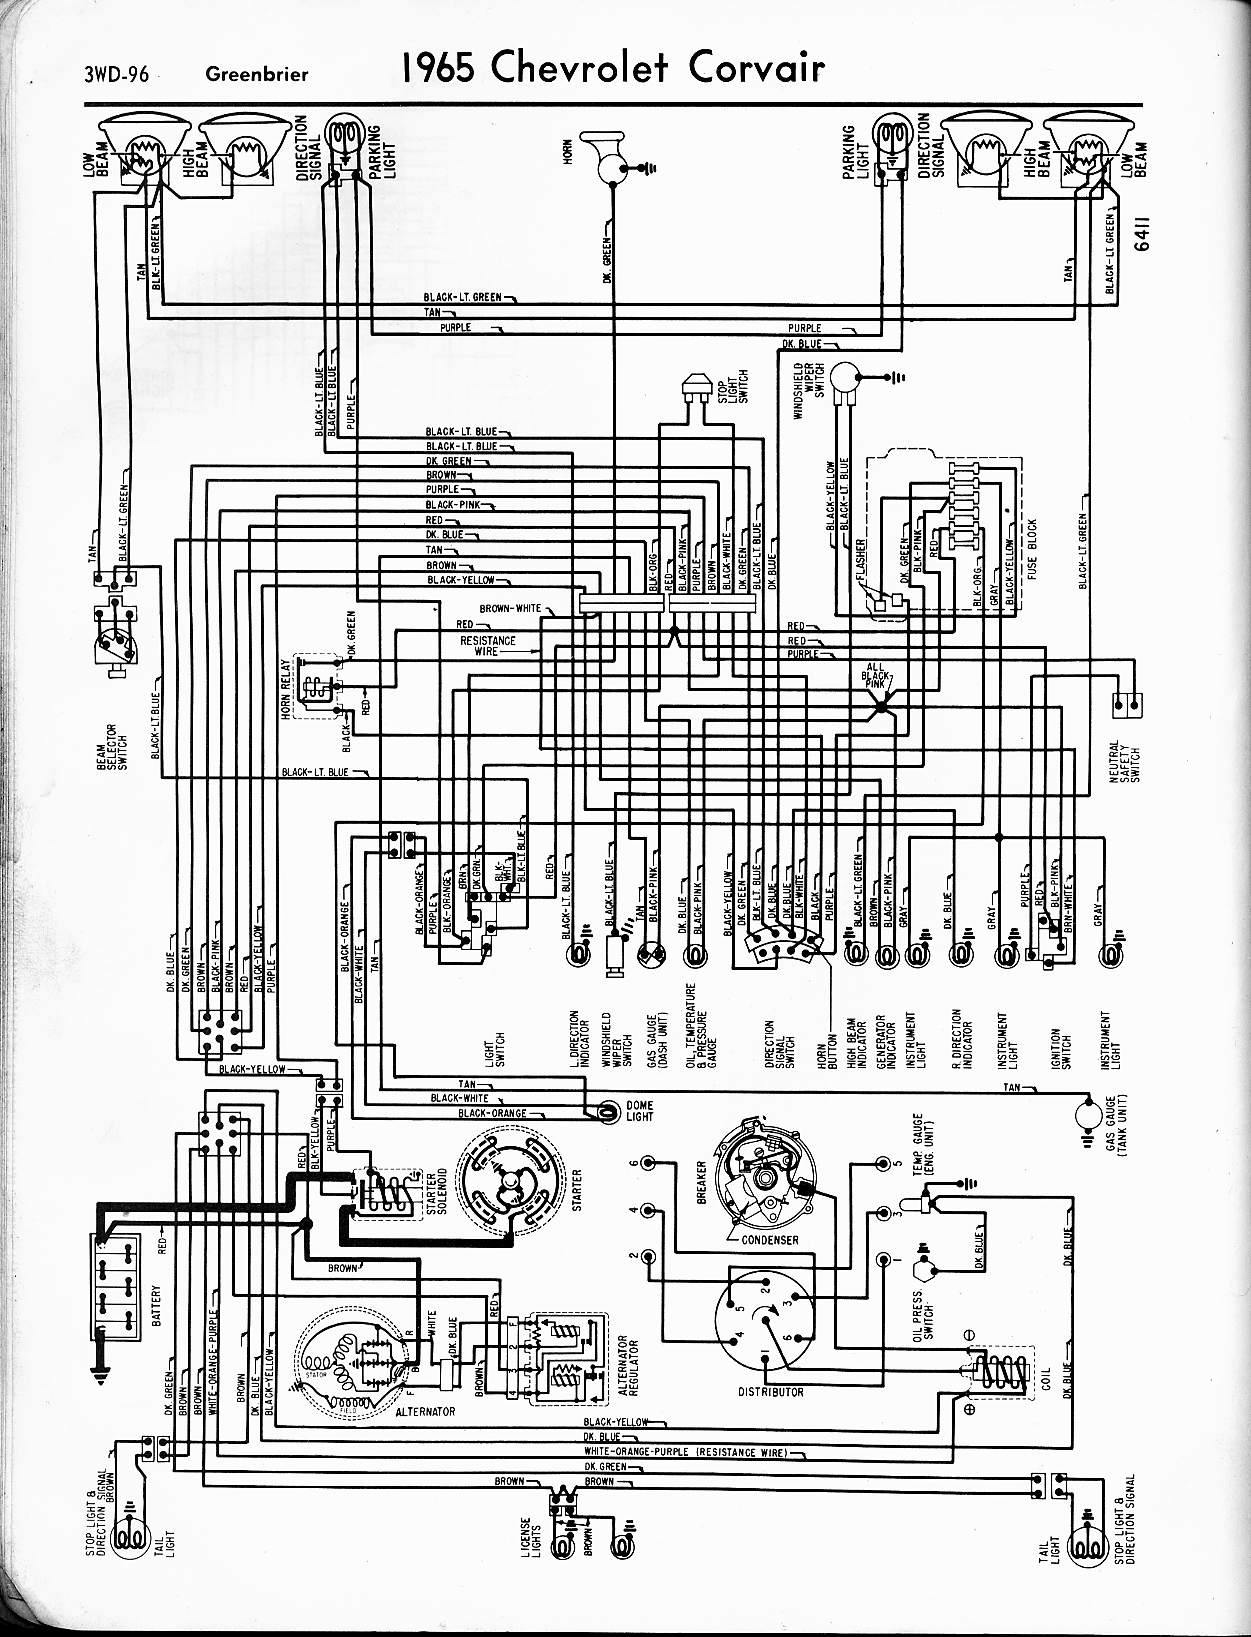 57 65 Chevy Wiring Diagrams 74 Nova Harness 1965 Corvair Greenbrier